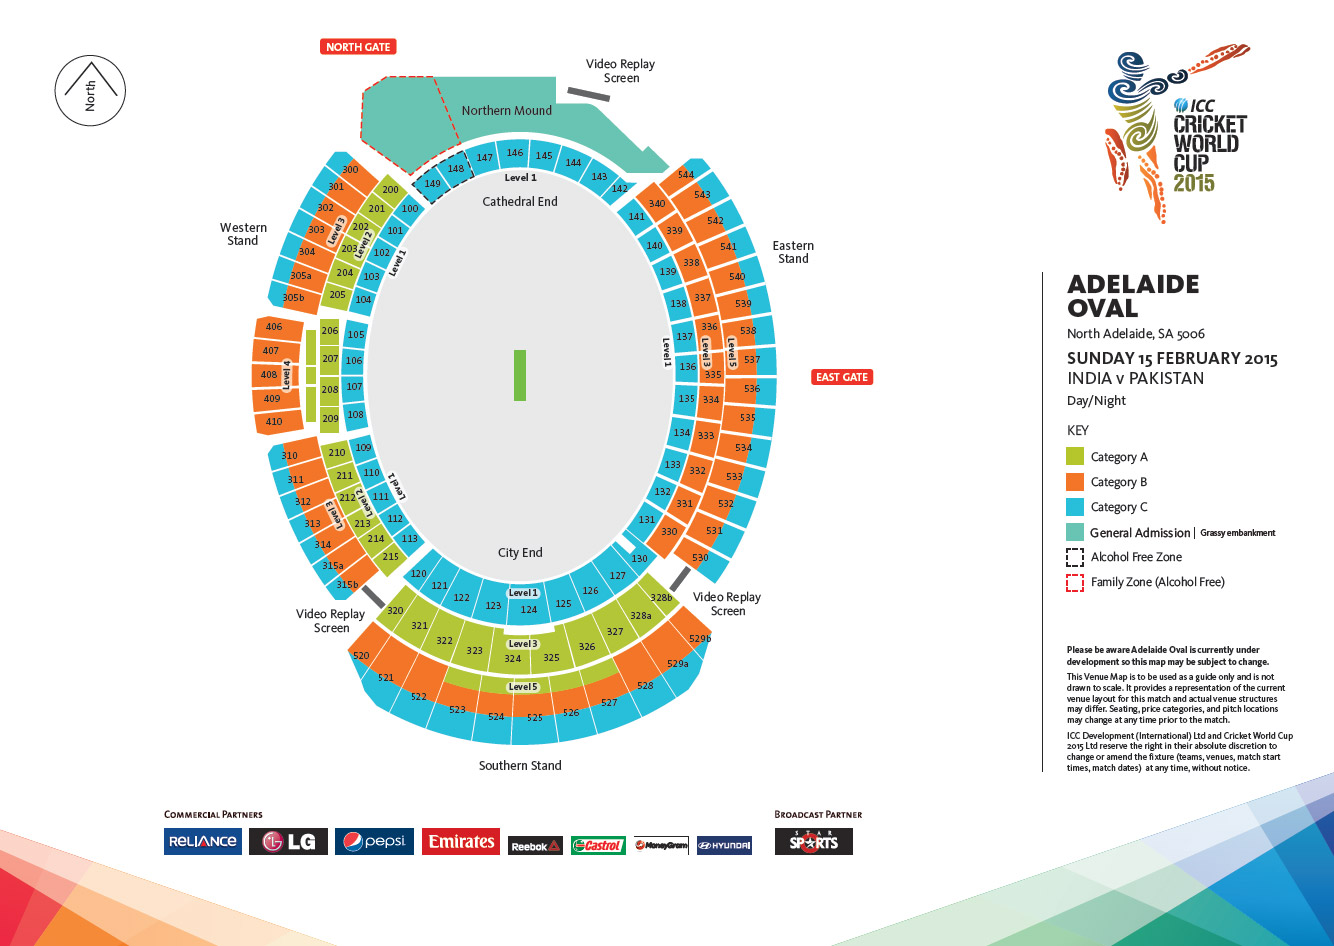 Cricket World Cup 2015 Tickets  A Cups Vs B Cups